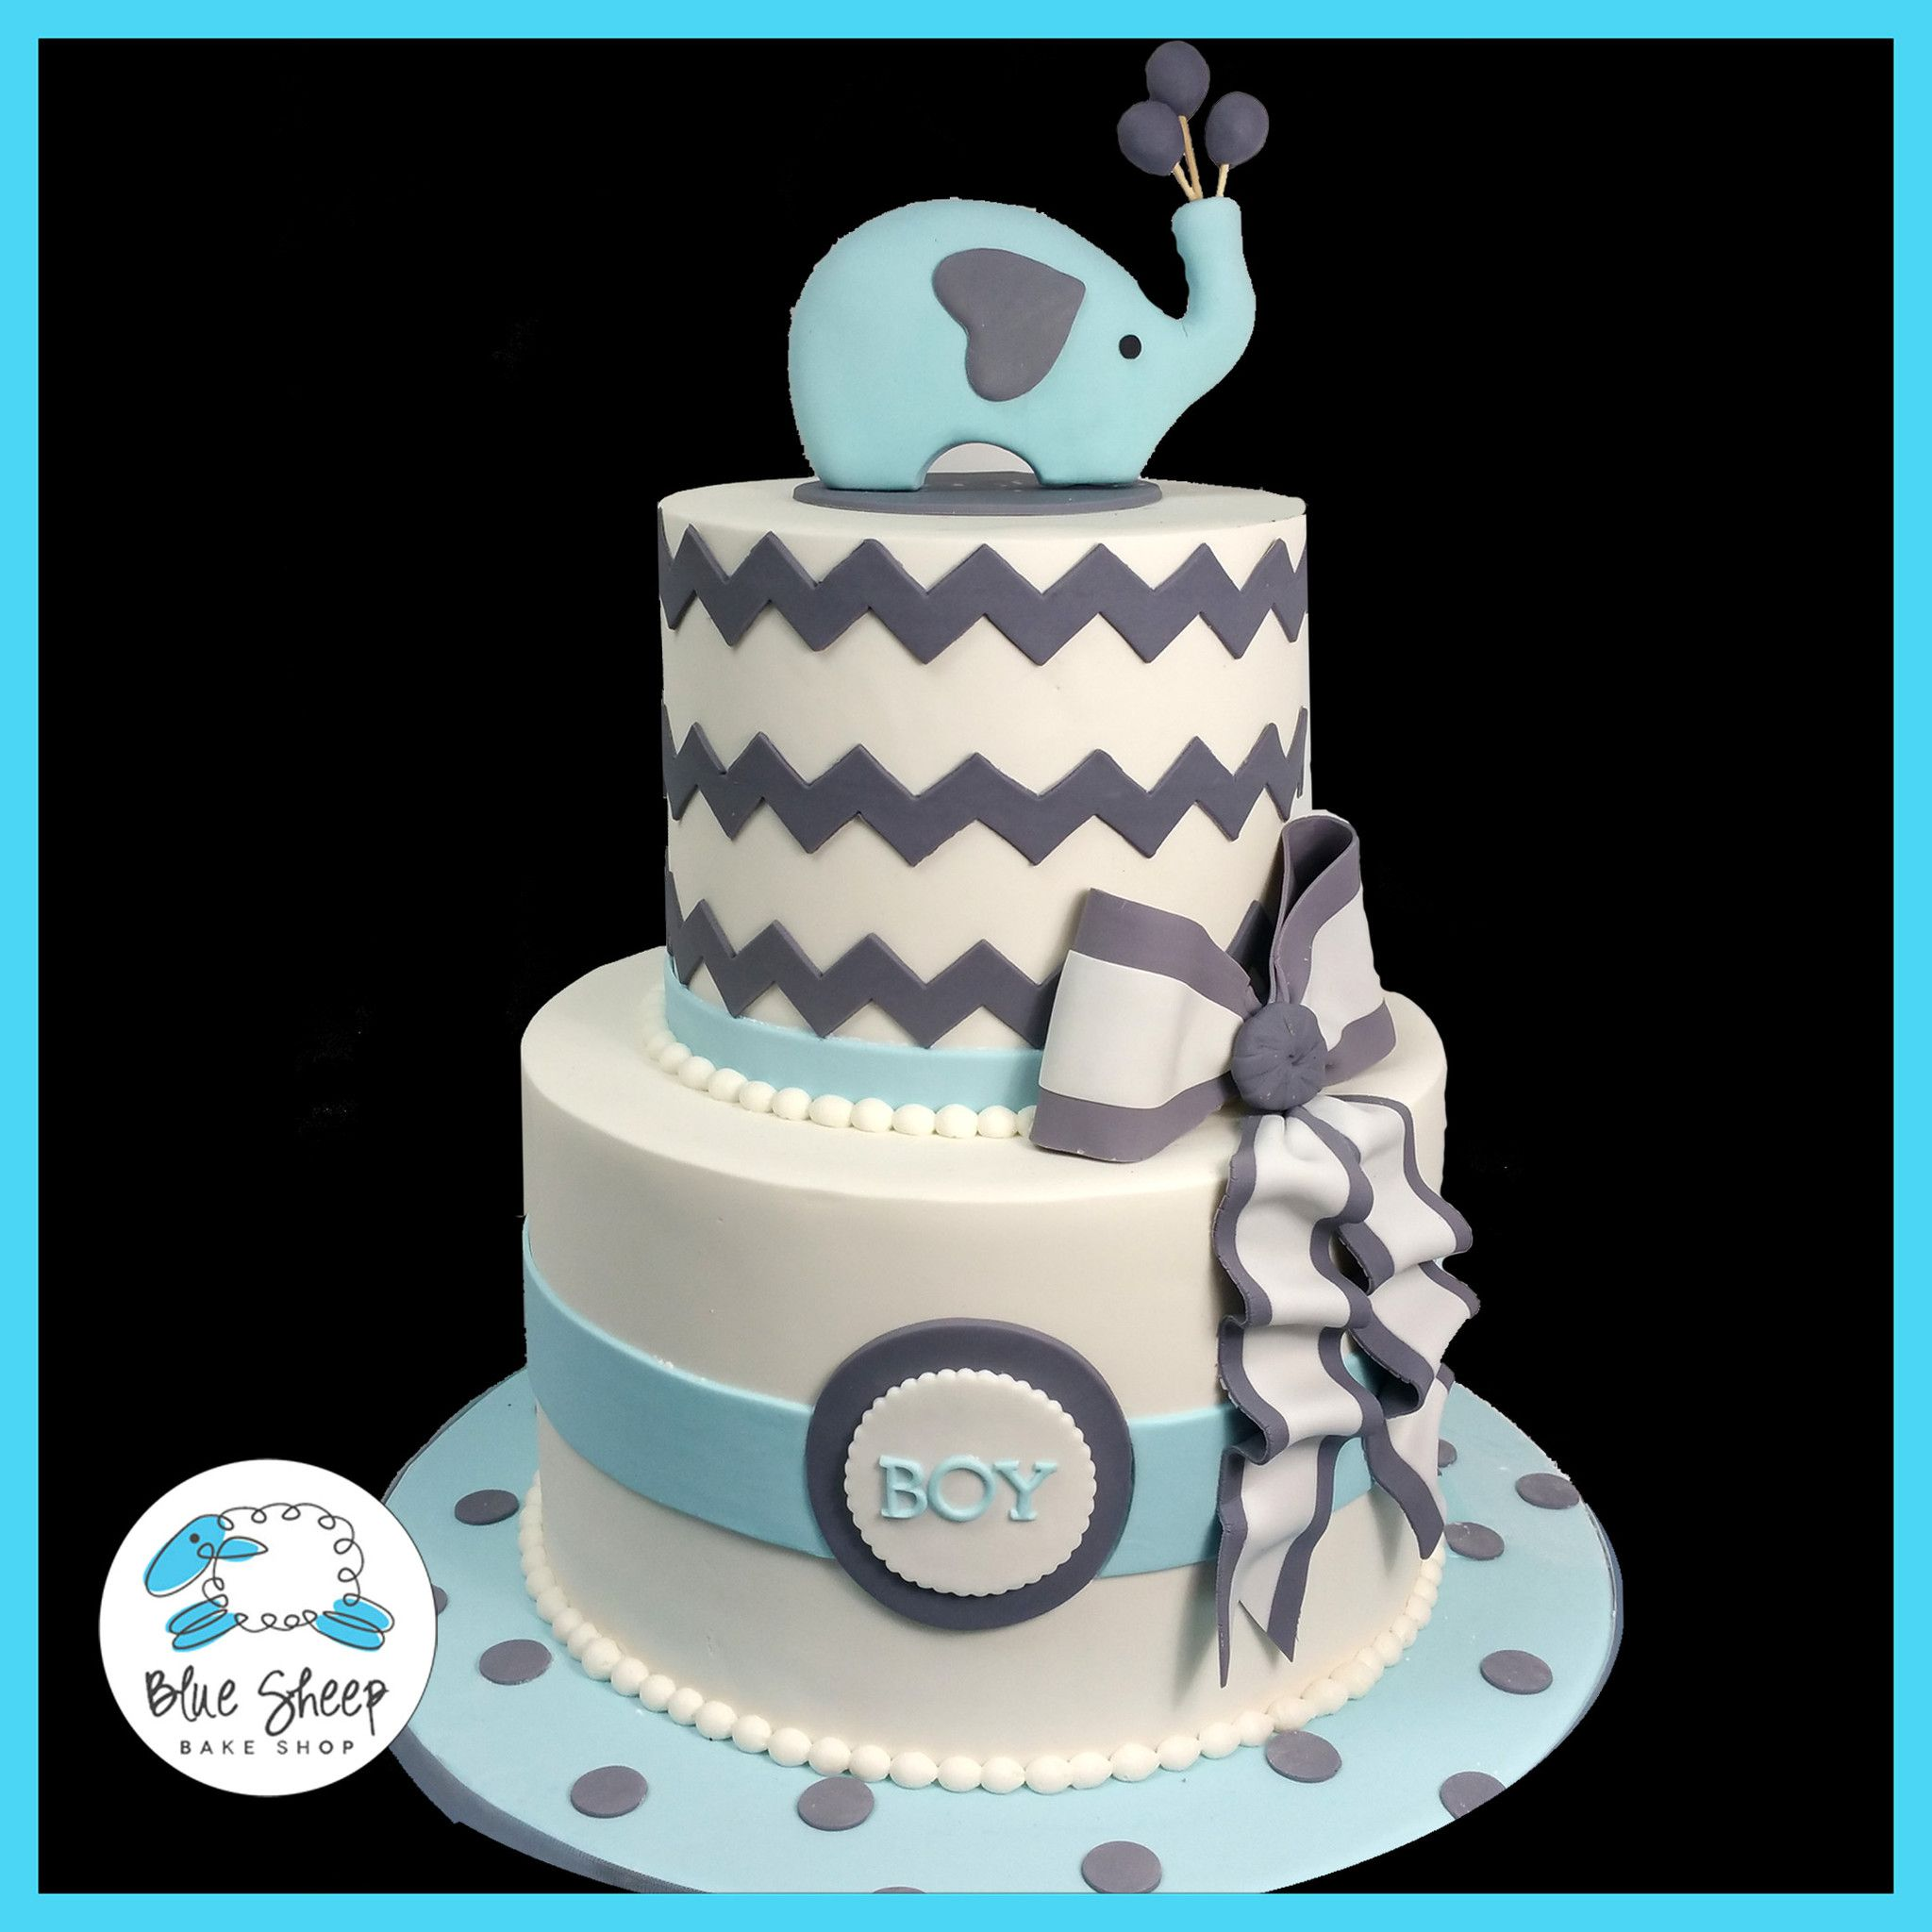 Elephant and Chevron Baby Shower Cake II – Blue Sheep Bake Shop